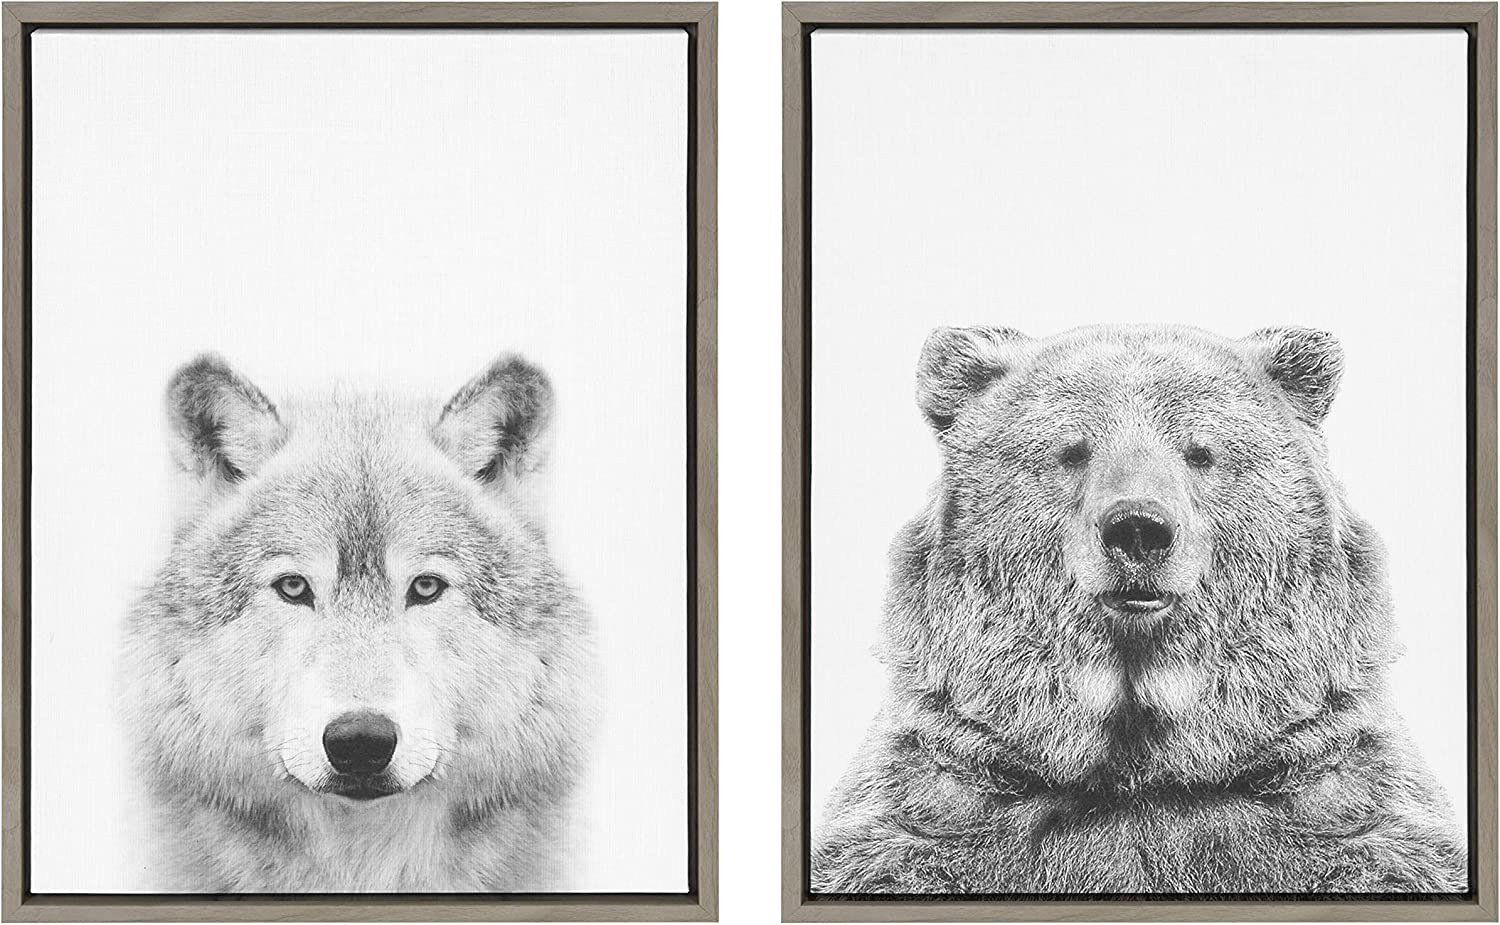 Kate and Laurel Sylvie Wolf and Bear Framed Canvas Wall Art Set by Simon Te of Tai Prints, 18x24 Gray, Animal and Nature Home Decor